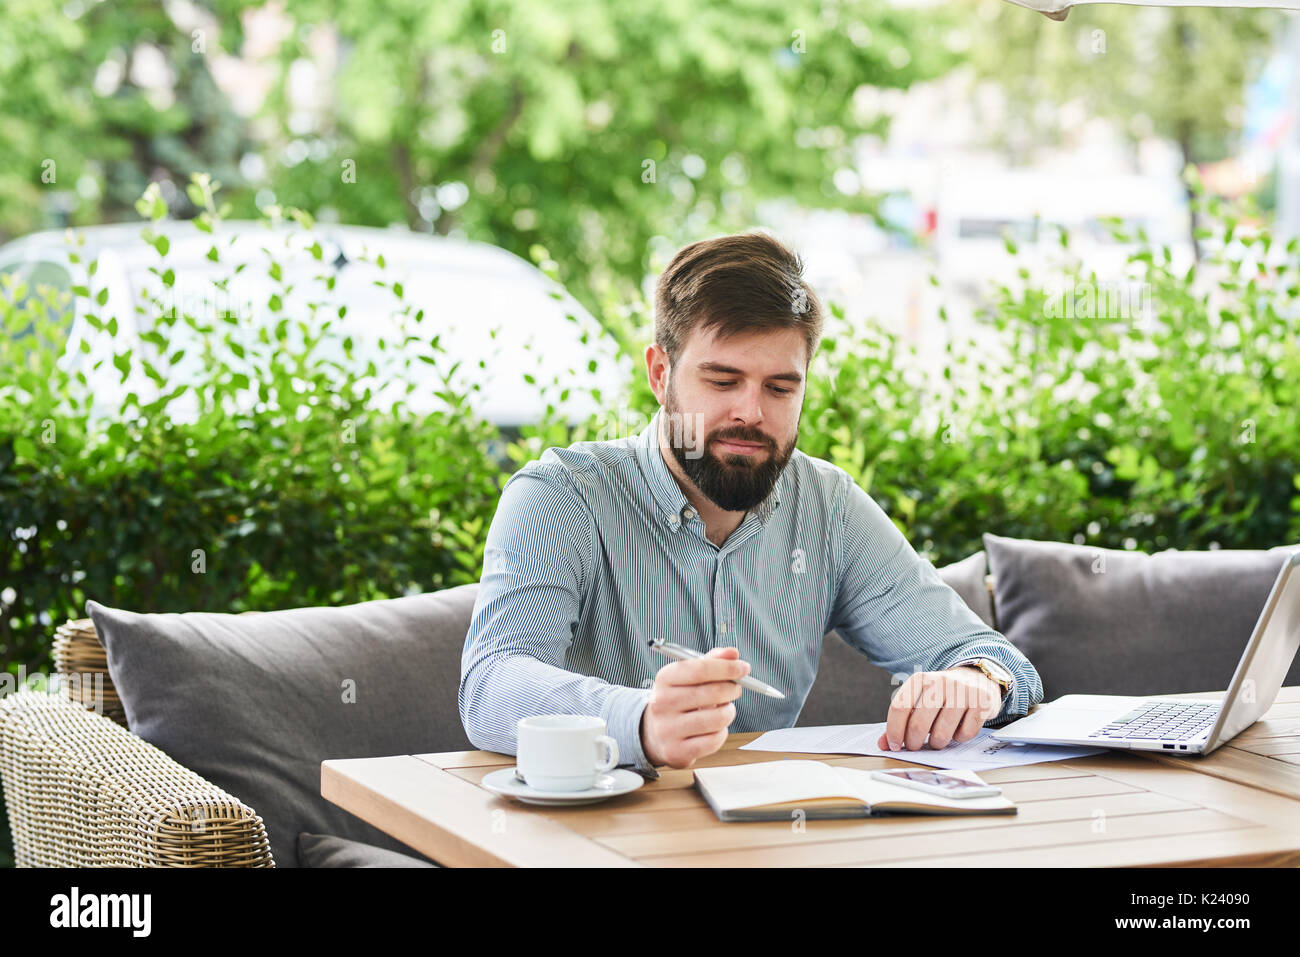 Smiling Businessman apprécie de travailler dans Cafe Photo Stock